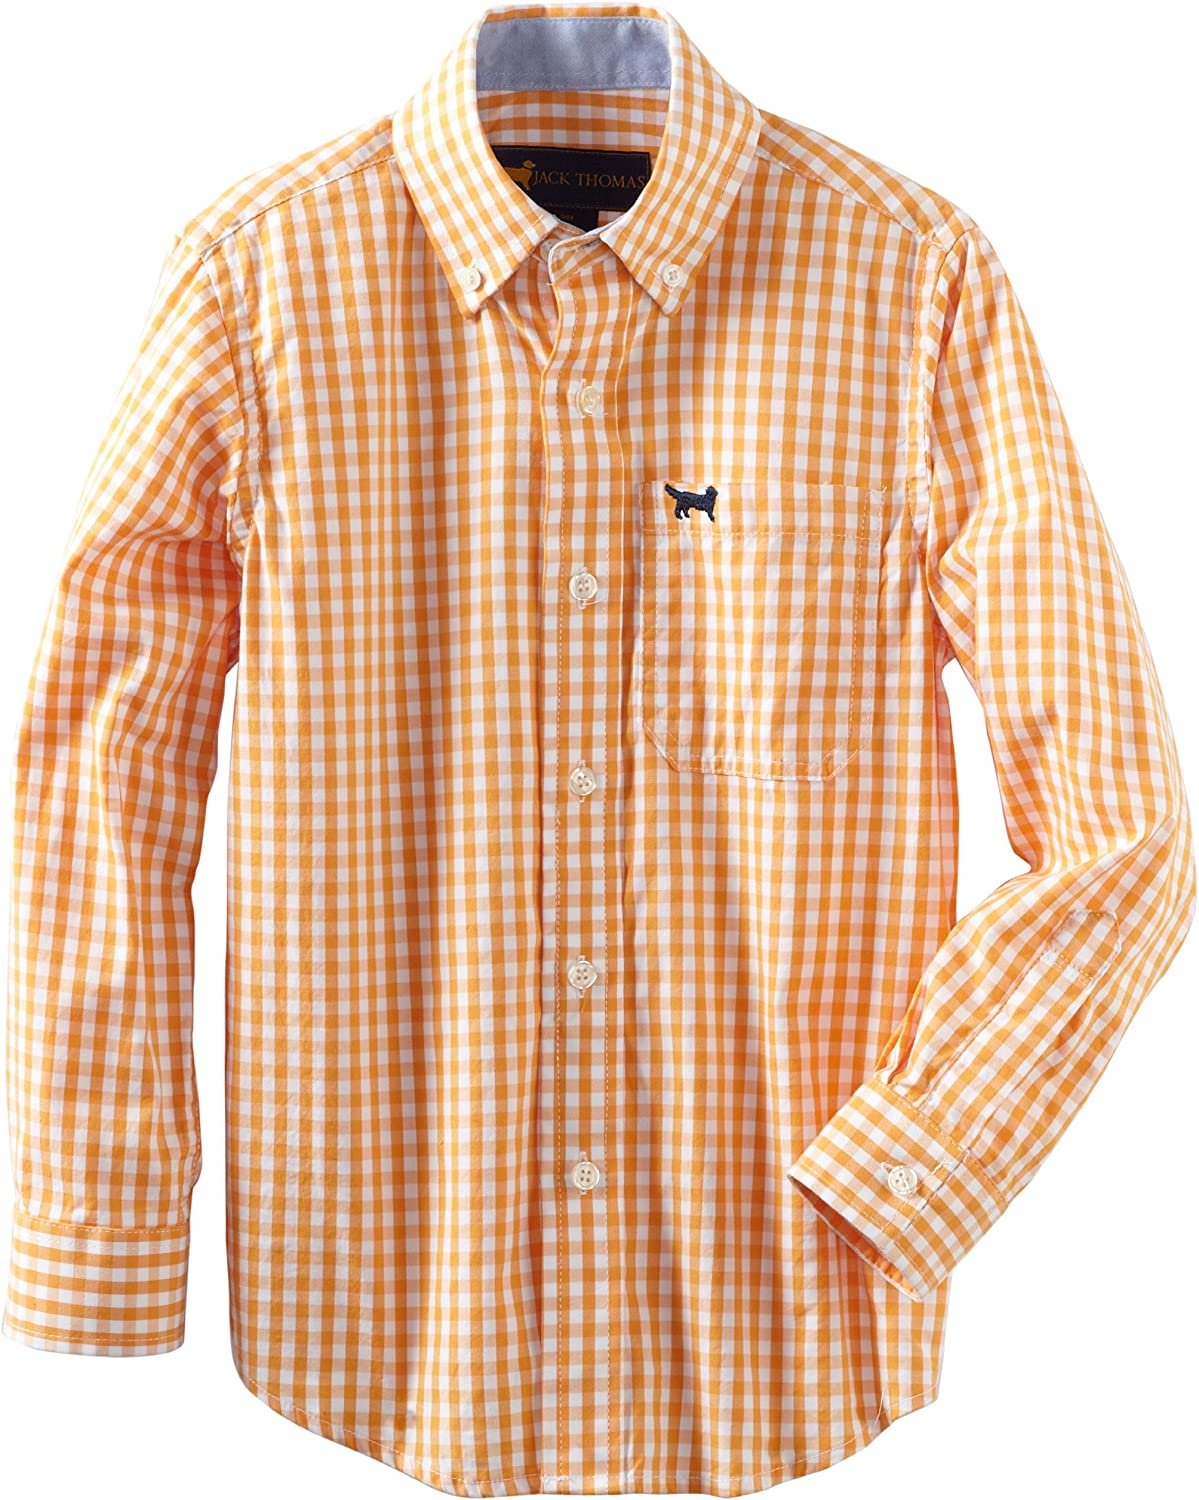 Wes and Willy Little Boys' Long-Sleeve Small Gingham Dress Shirt